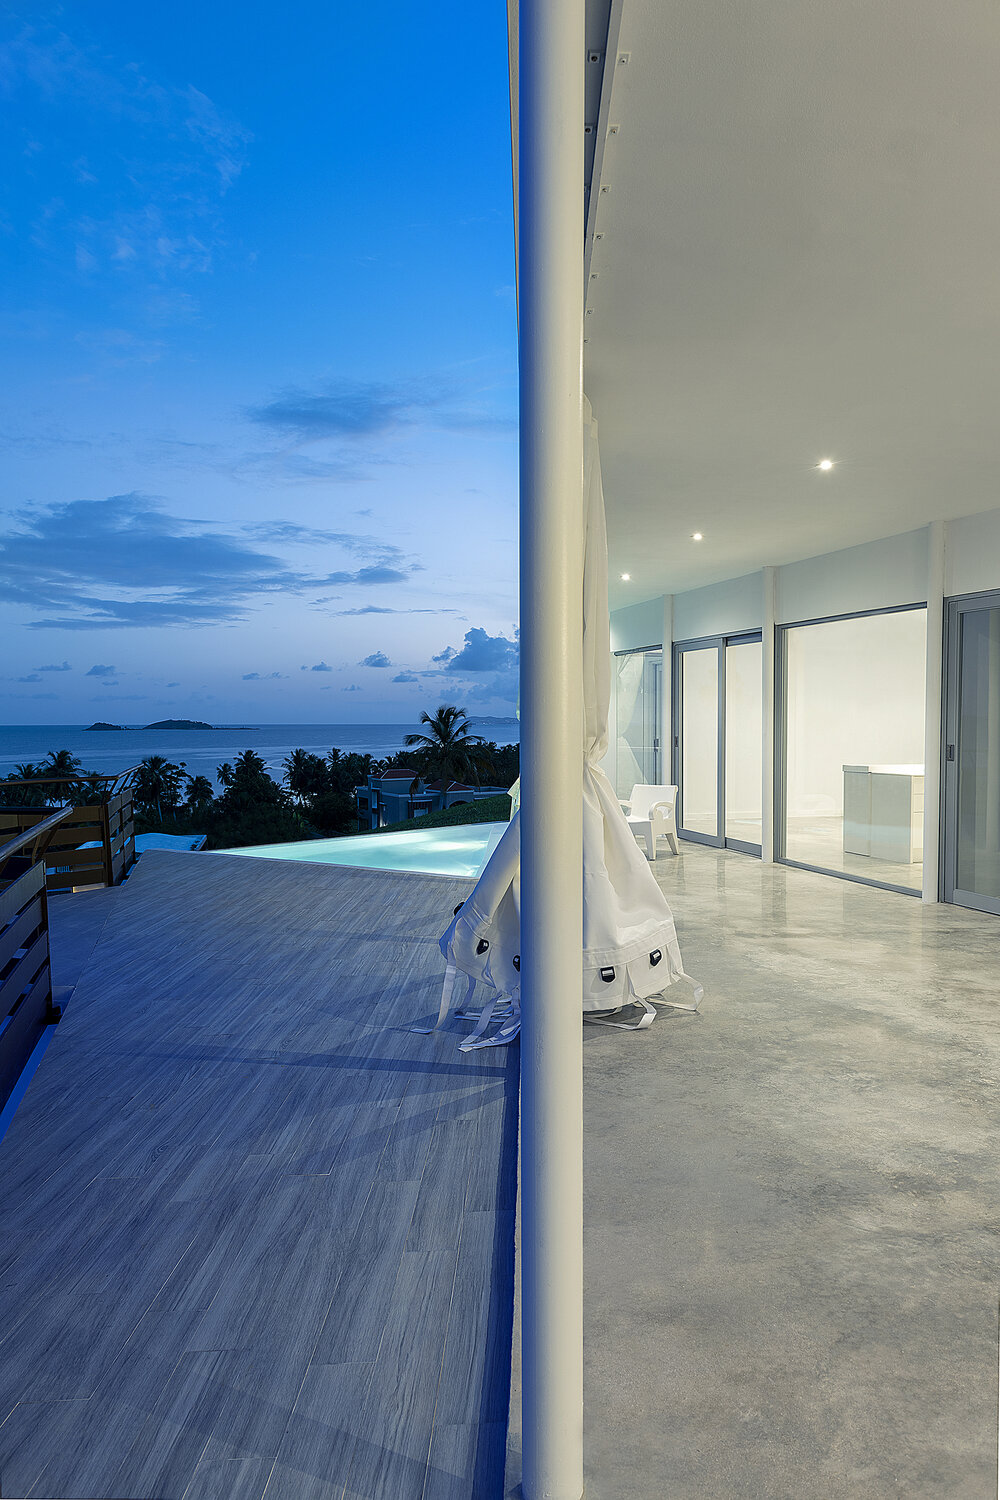 Casa_Flores_architecture_Puerto_rico_terrace_deck_pool_fuster_architects_house+Photo+by+Jaime+Navarro (1)